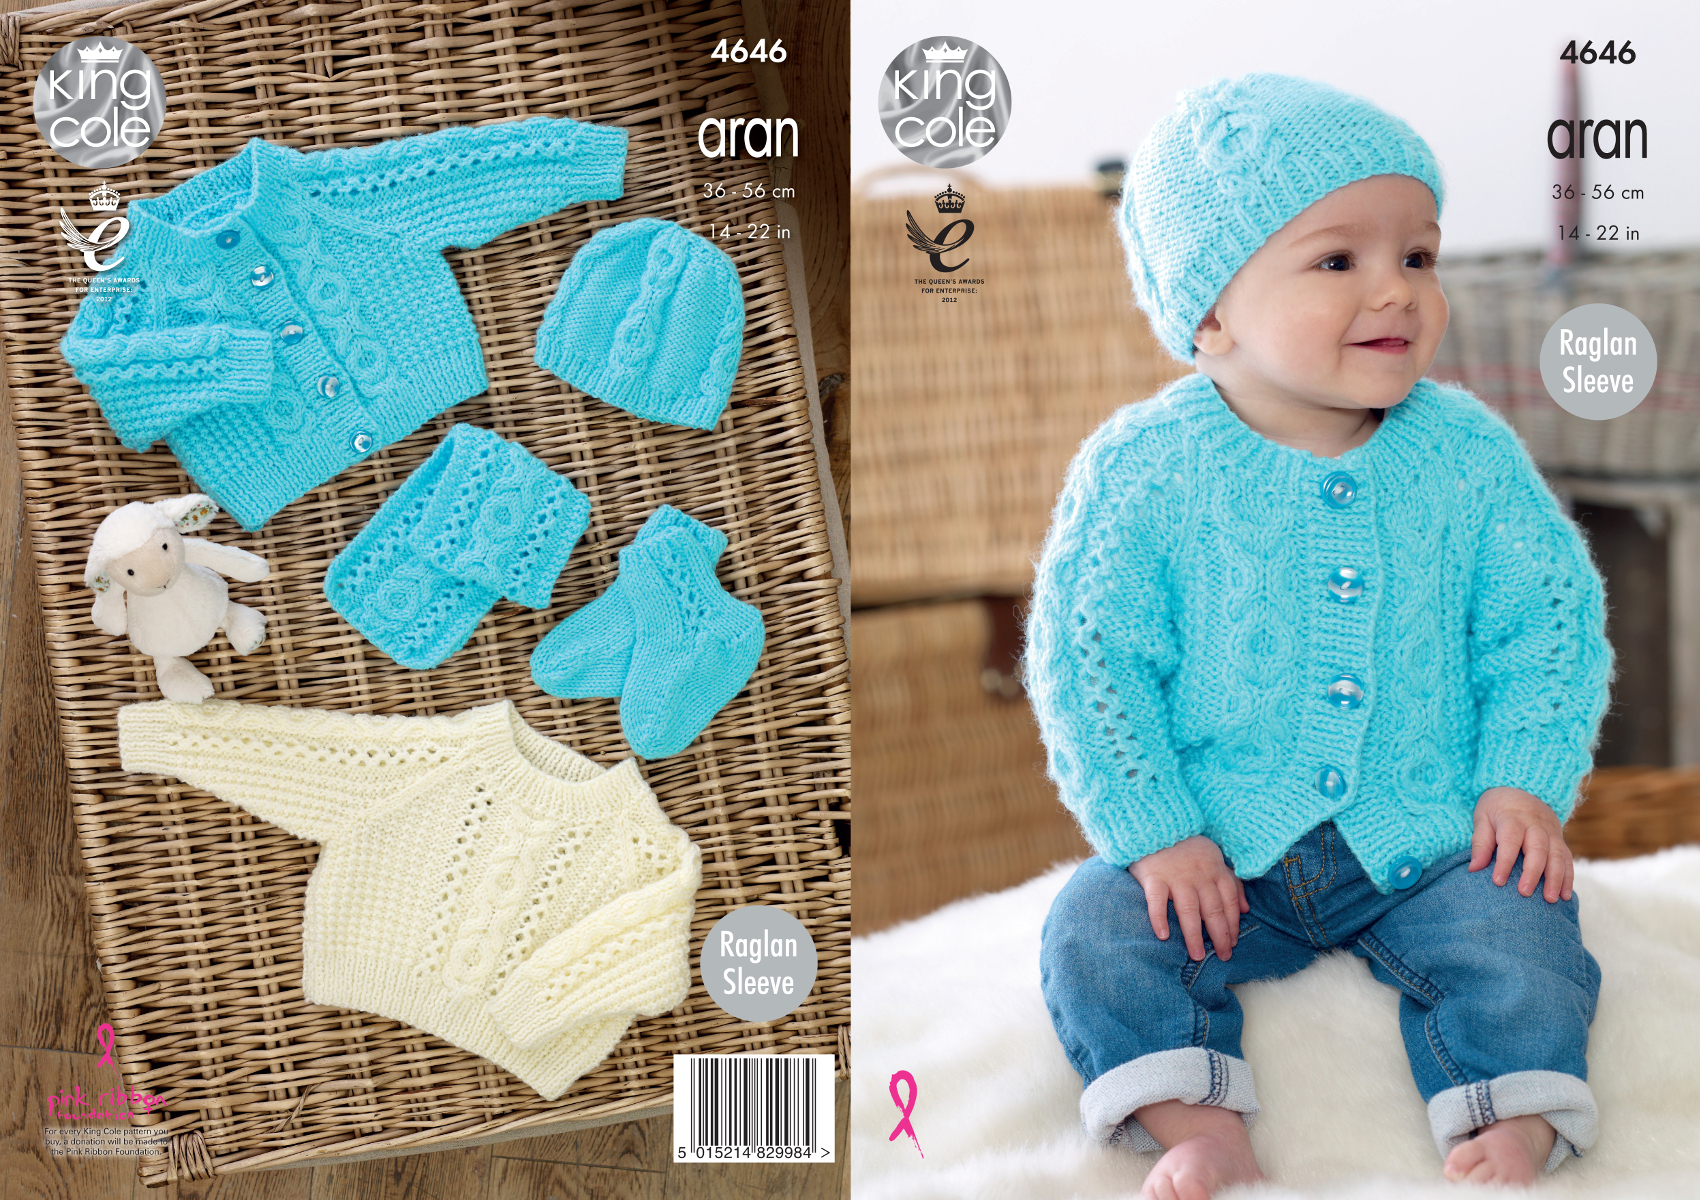 0cab313b3b32 King Cole Baby Aran Knitting Pattern Sweater Cardigan Hat Scarf ...